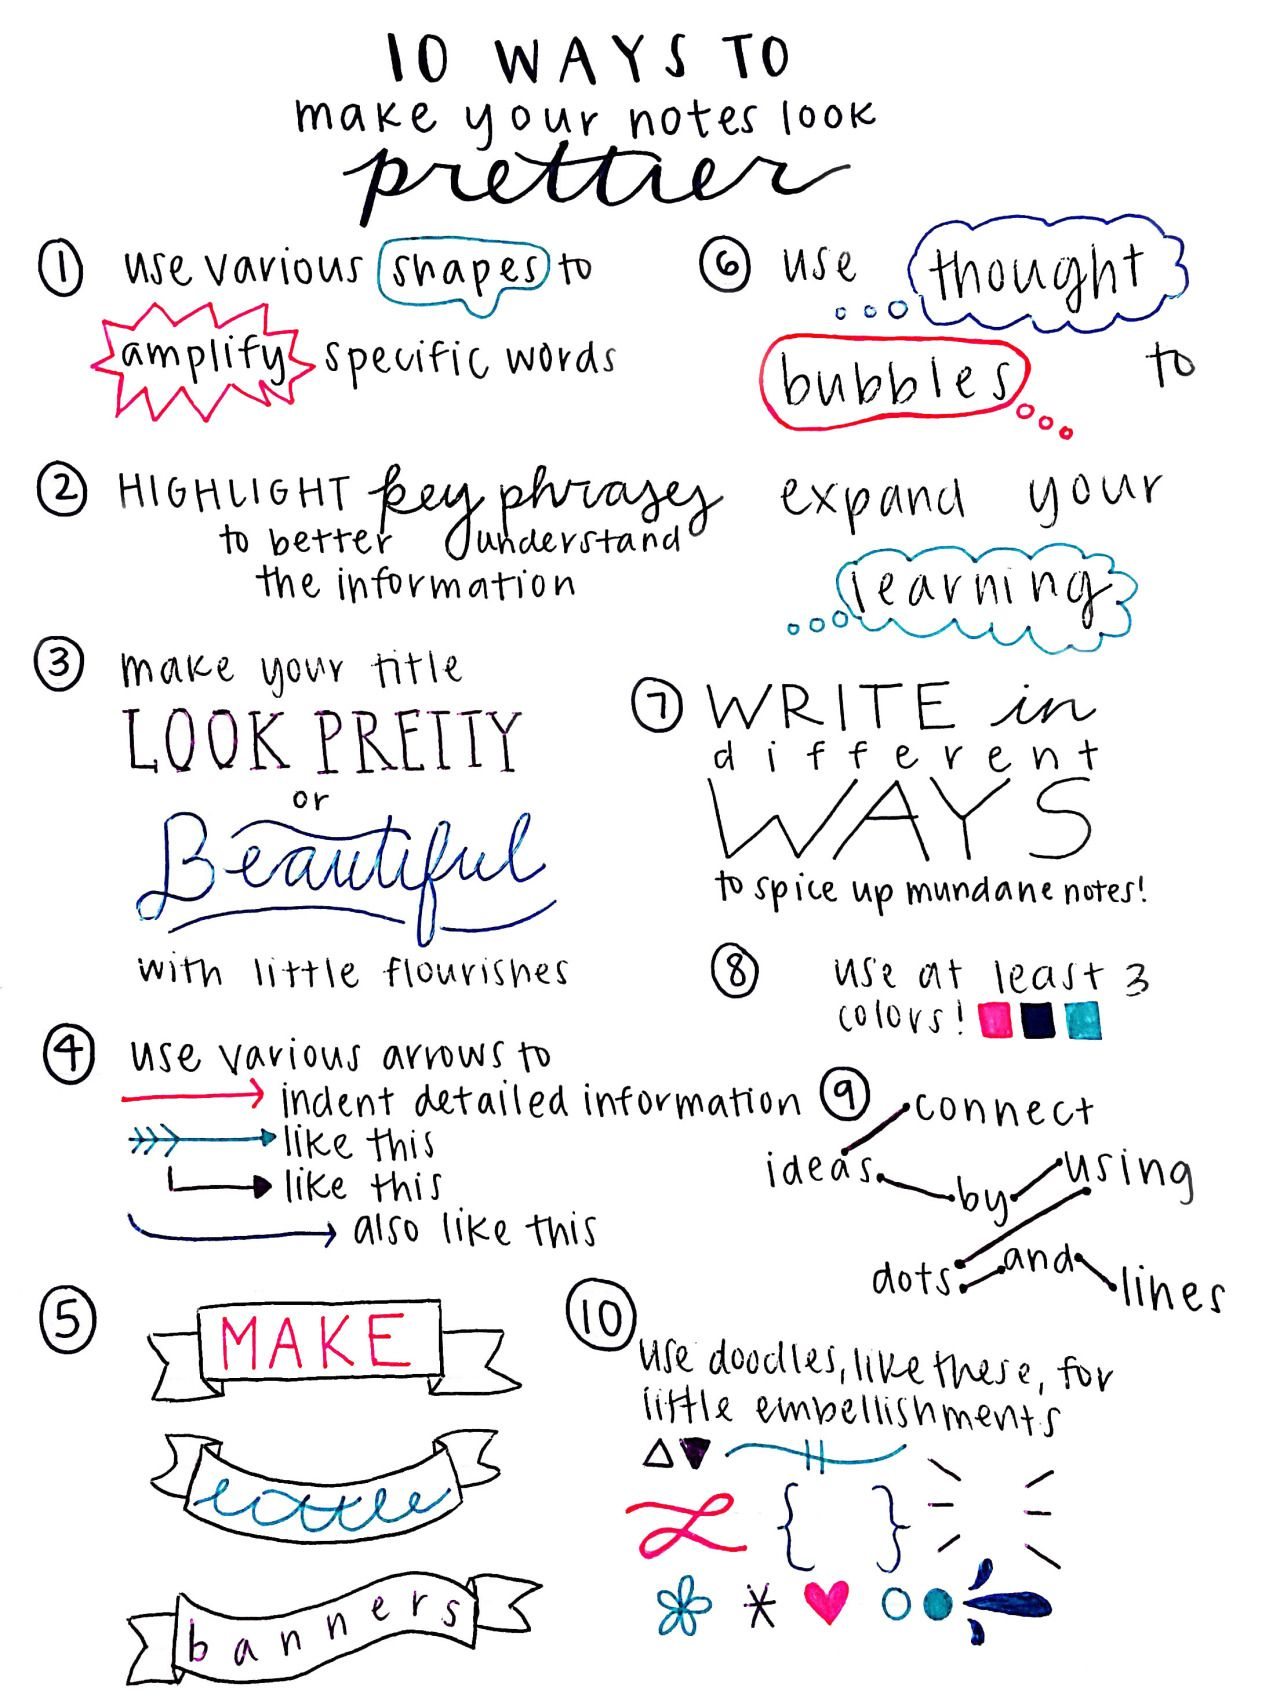 colourfulstudy   u201c studywithpaigey   u201c 10 ways to make your notes look prettier  a helpful list